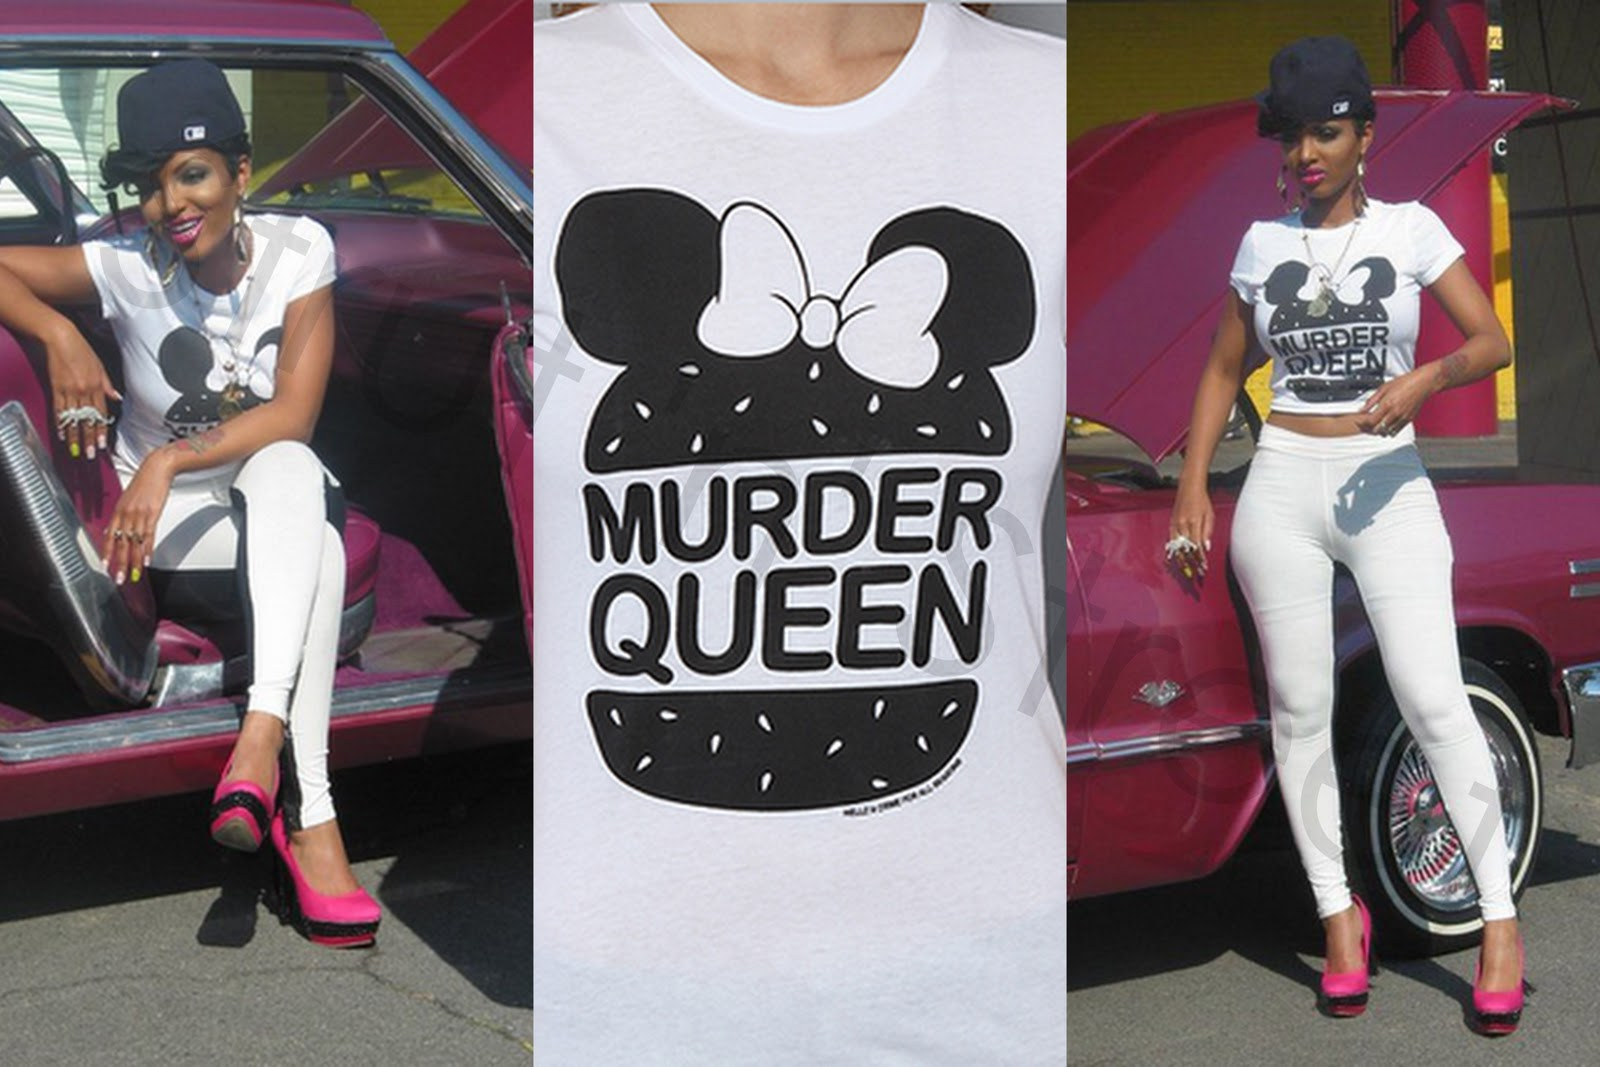 Lola Monroe Hairstyles Lola monroe spotted in hellz bellz murder queen t shirt overtime